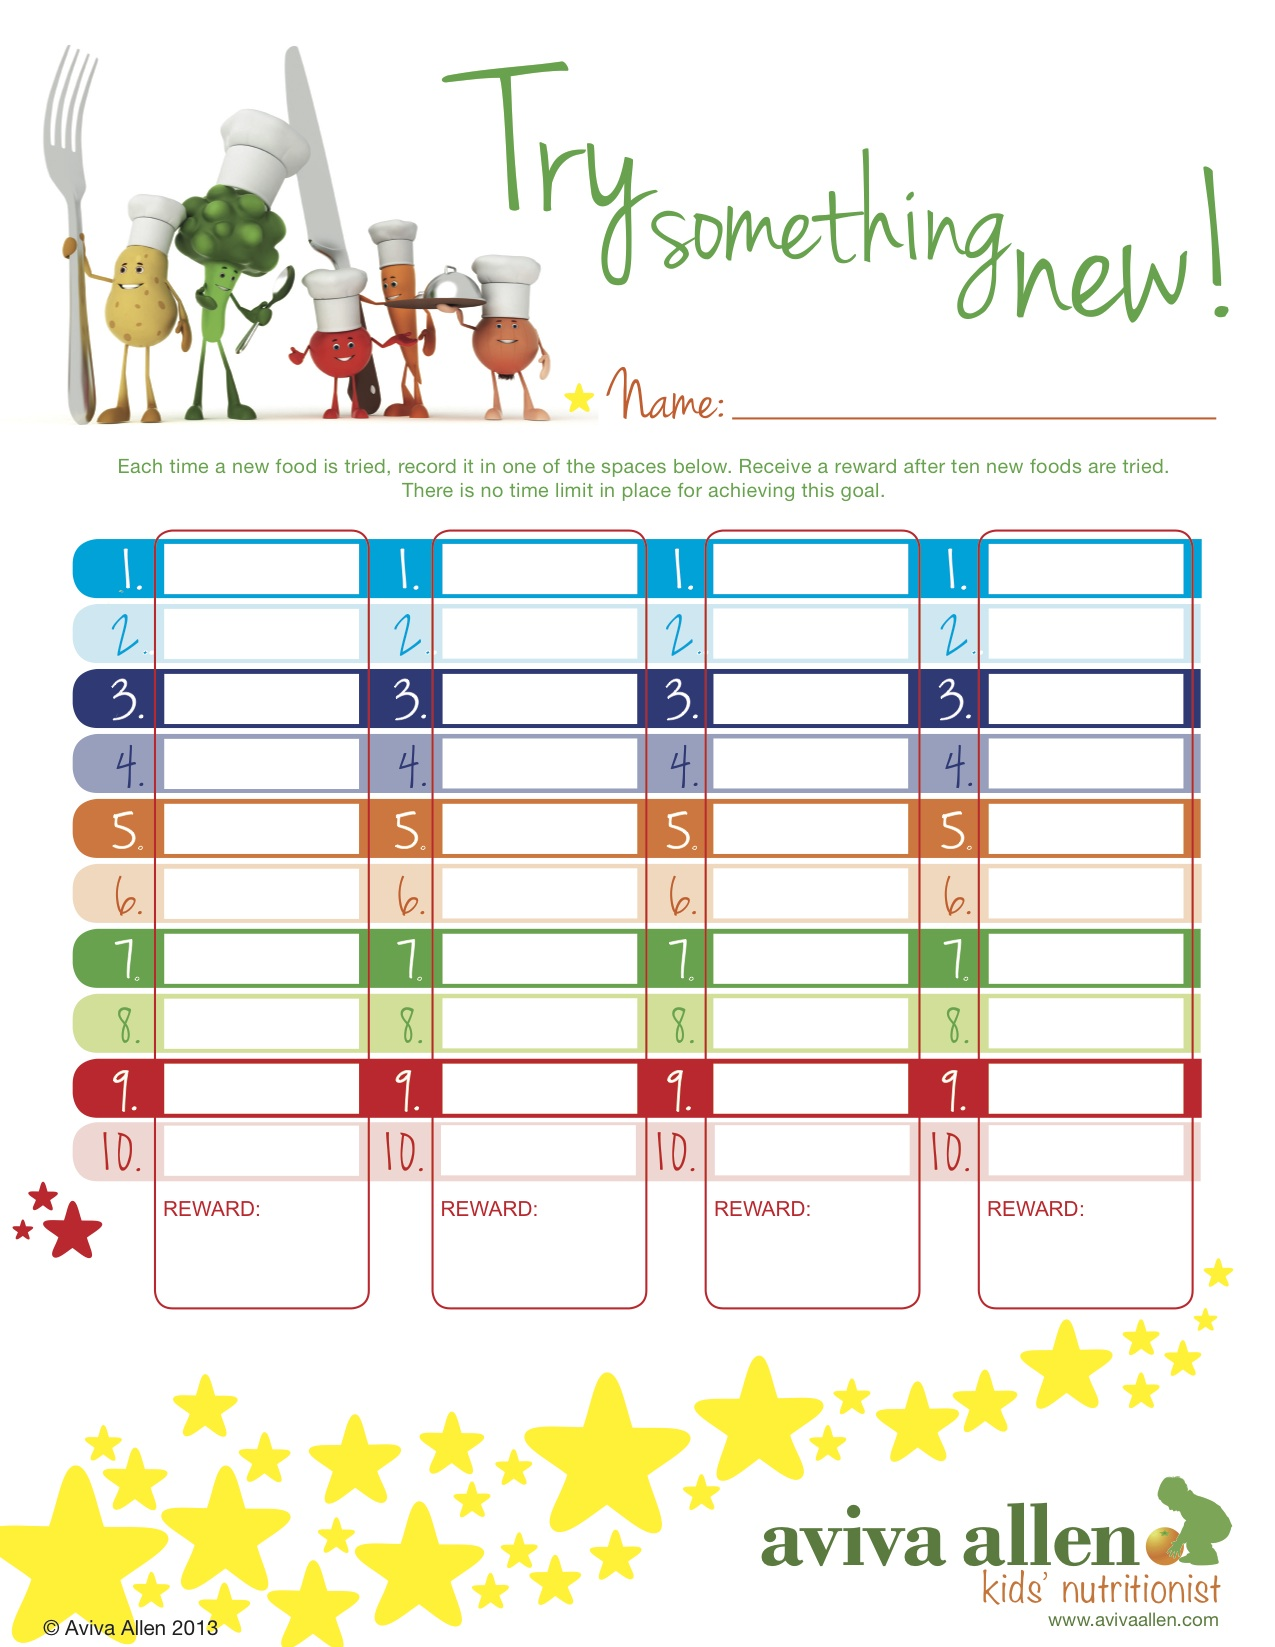 Try something new chart - image